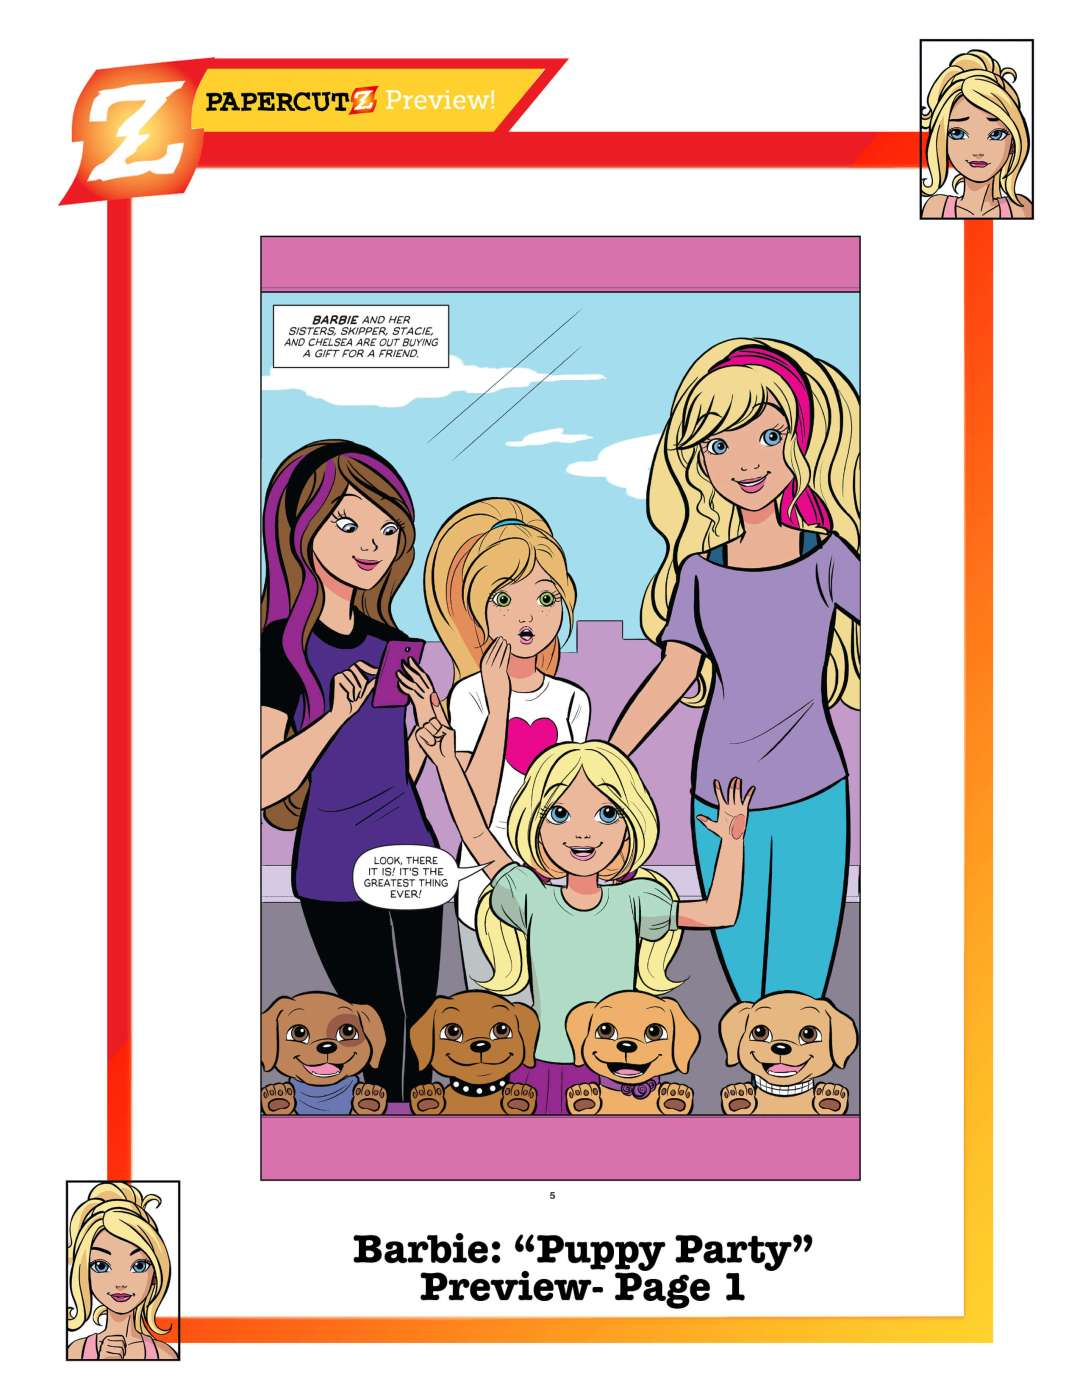 barbie_puppies_preview_page1